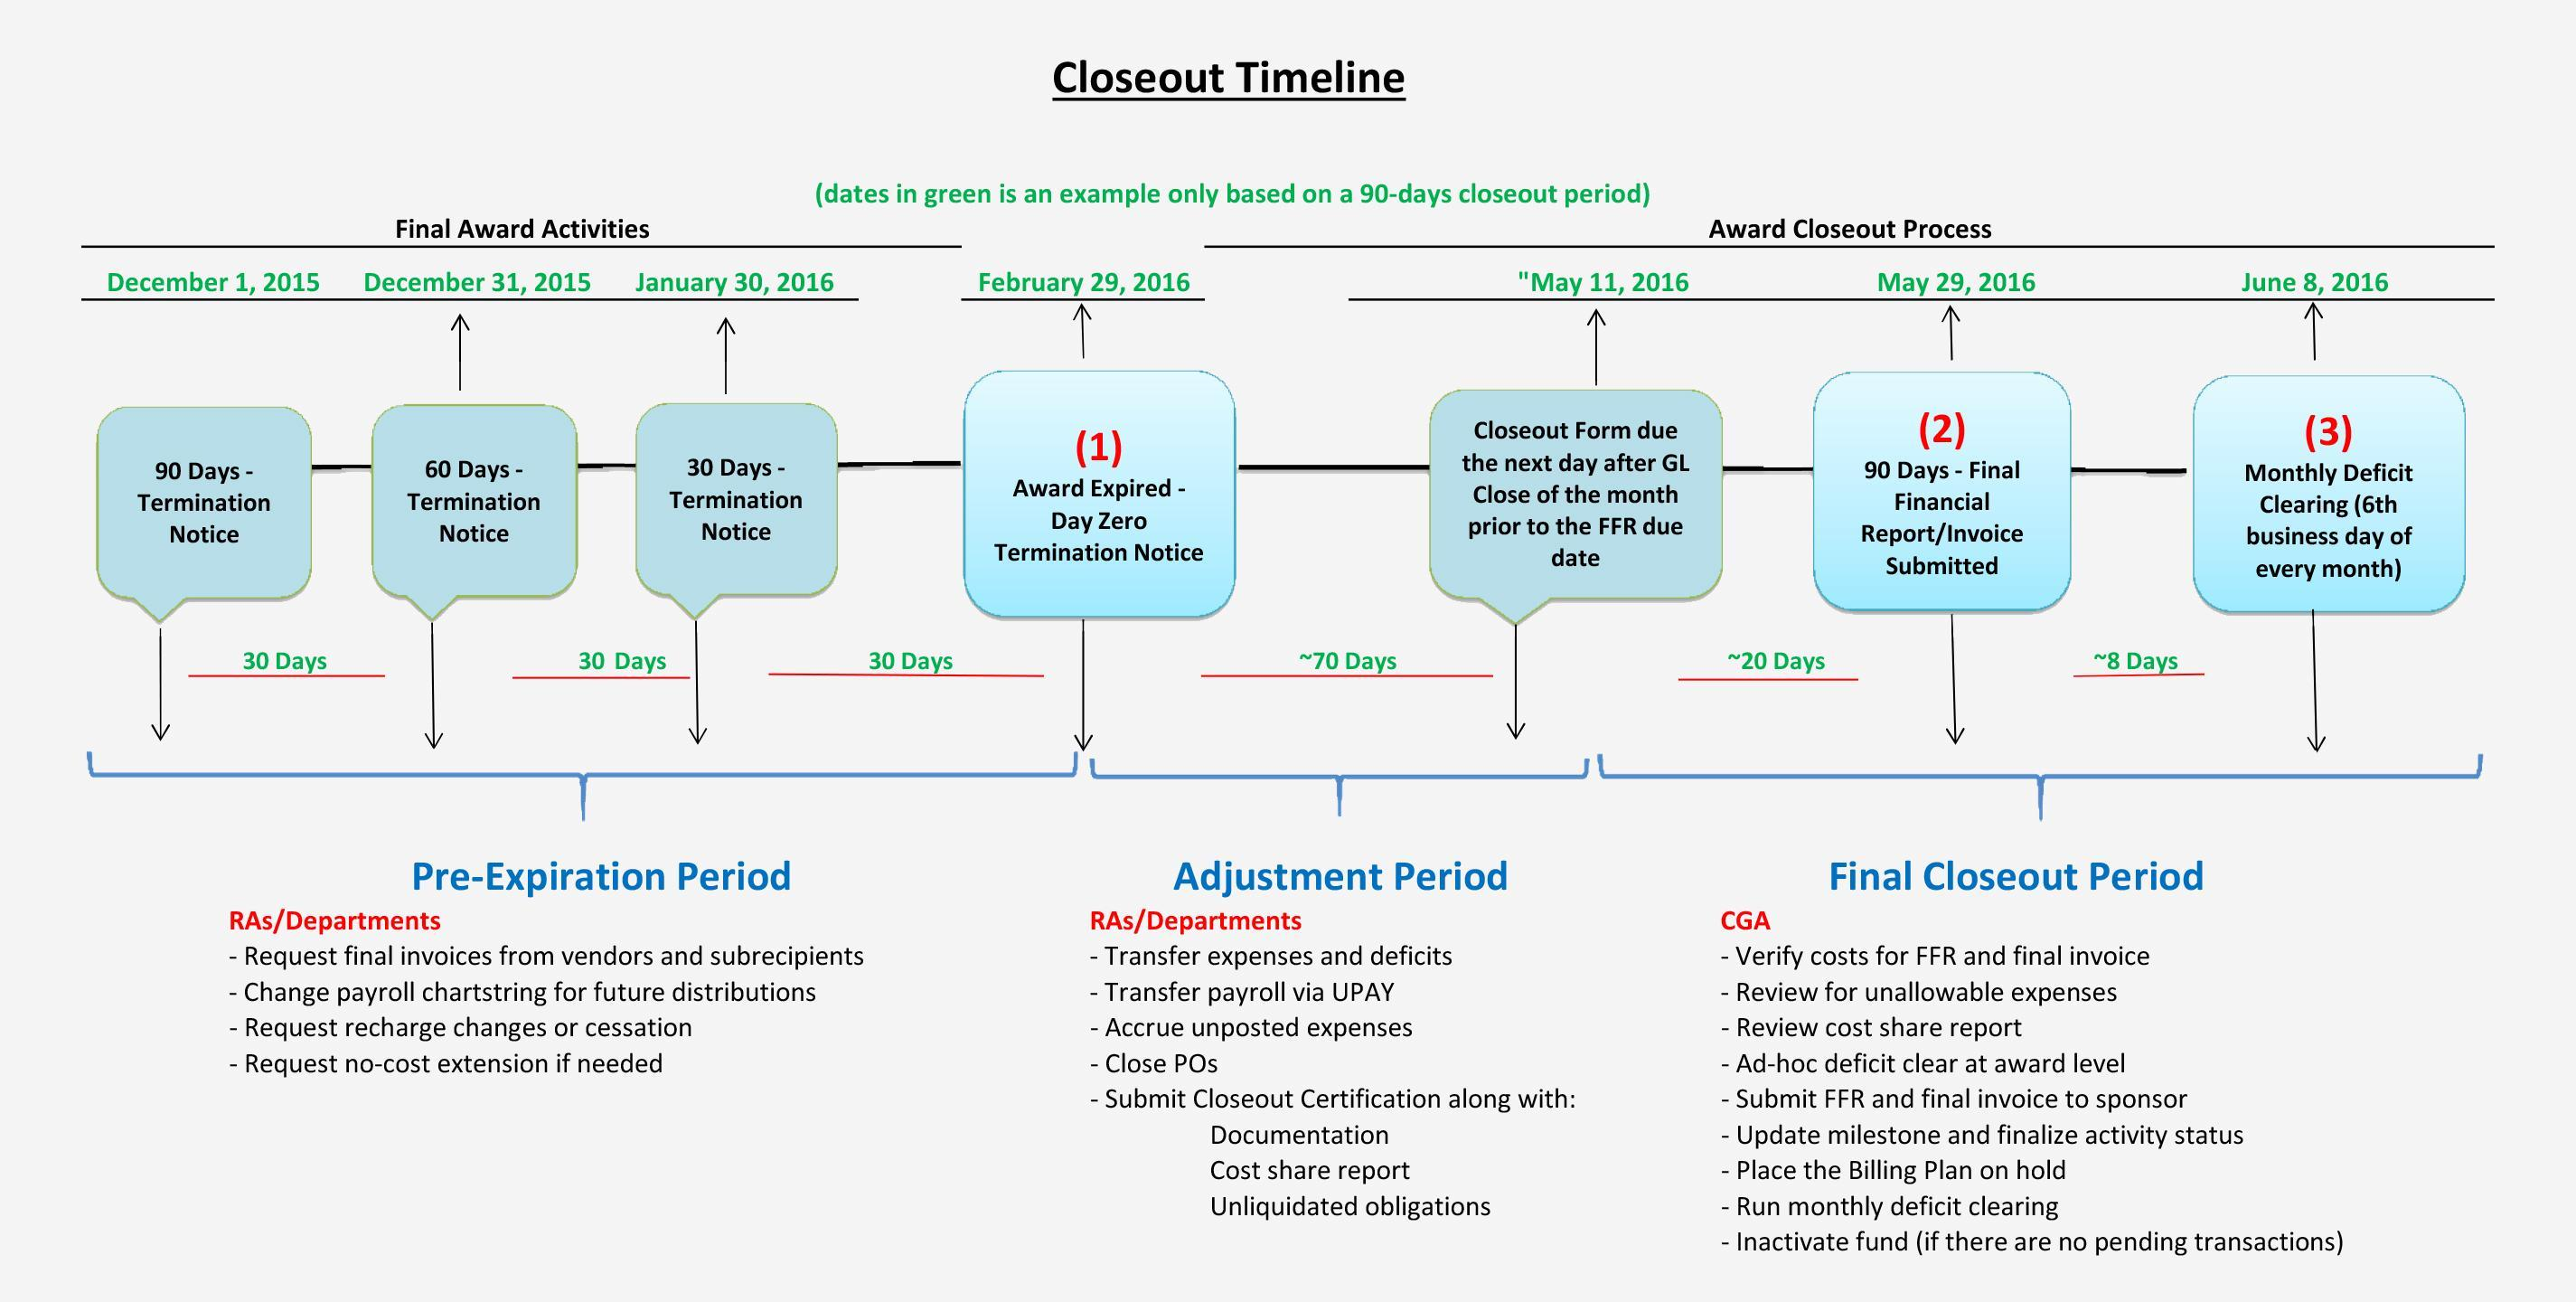 Award closeout timeline